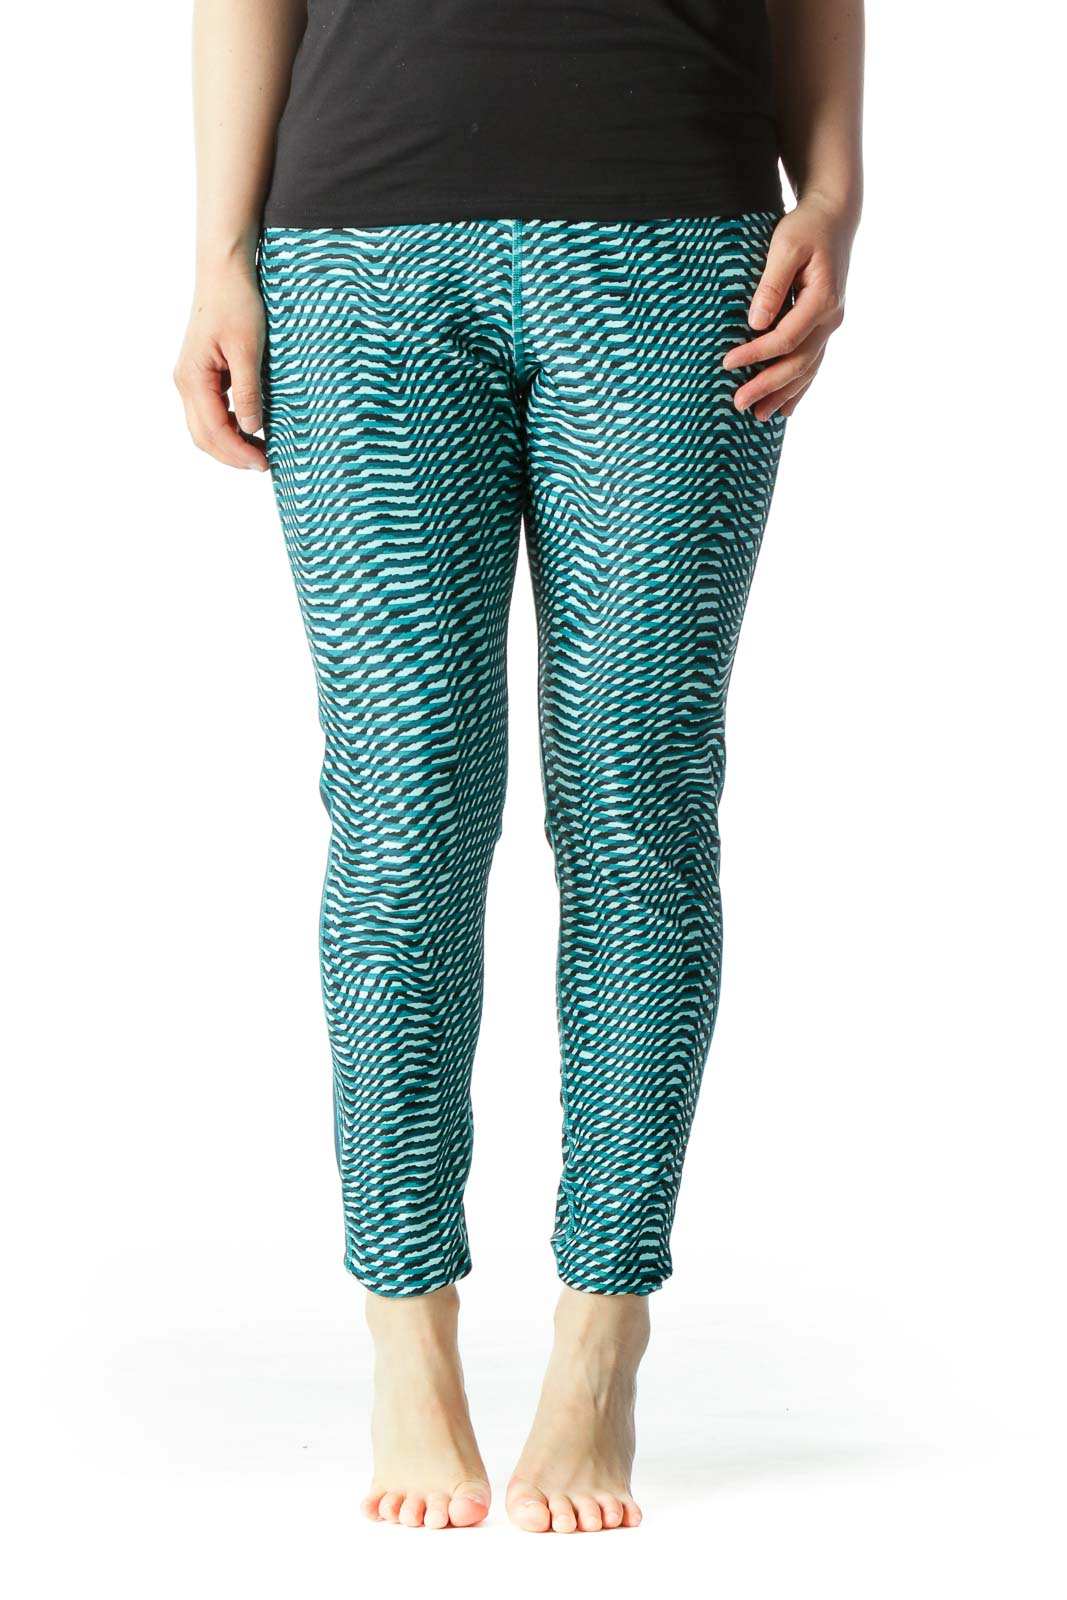 Green & Black Printed Color-Blocked High-Waisted Yoga Pants